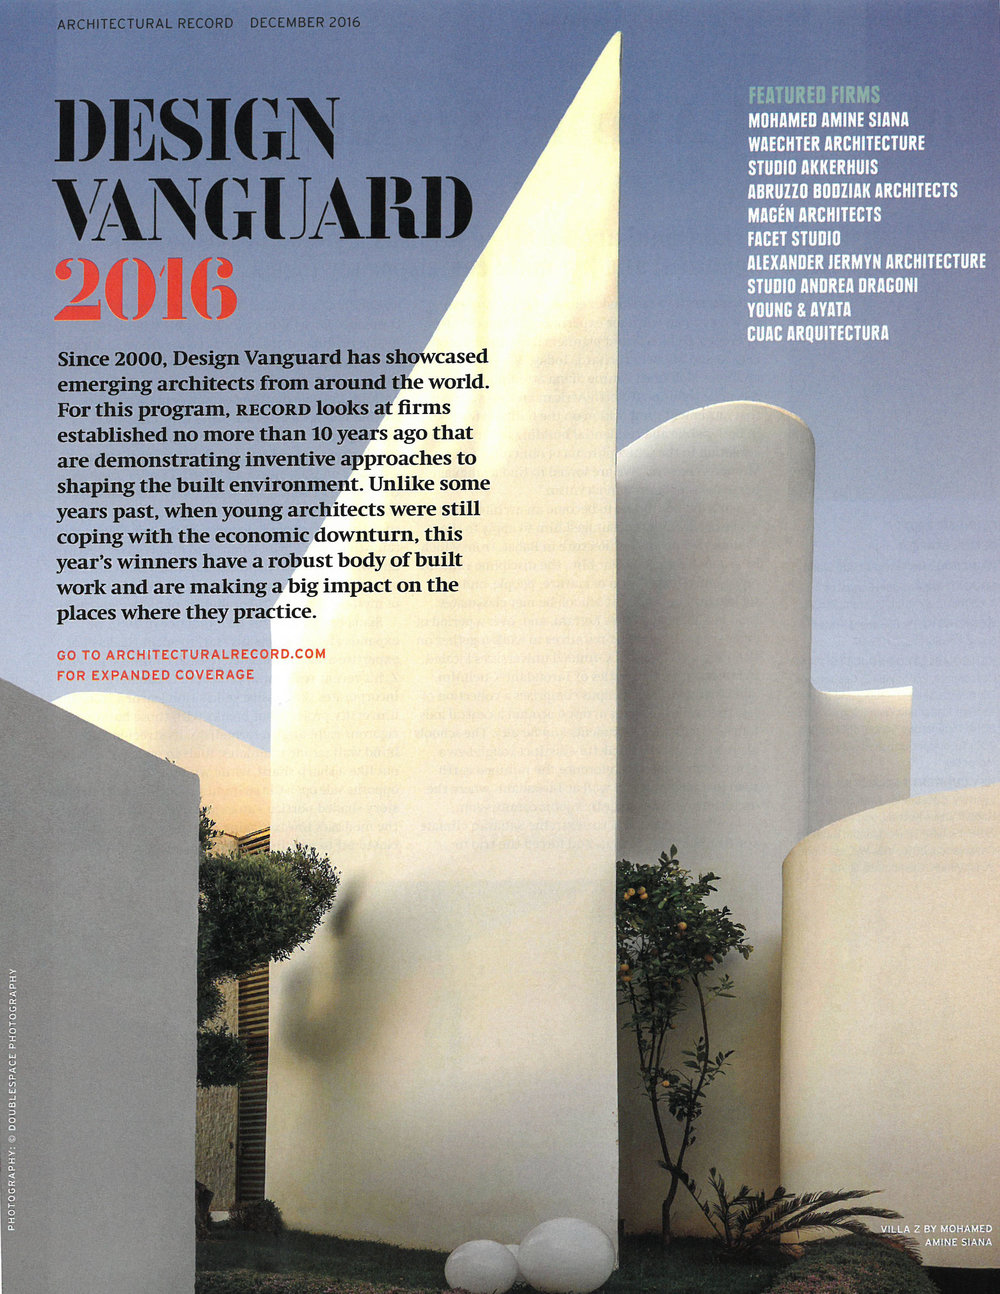 Arch Record Design Vanguard PG1.jpg